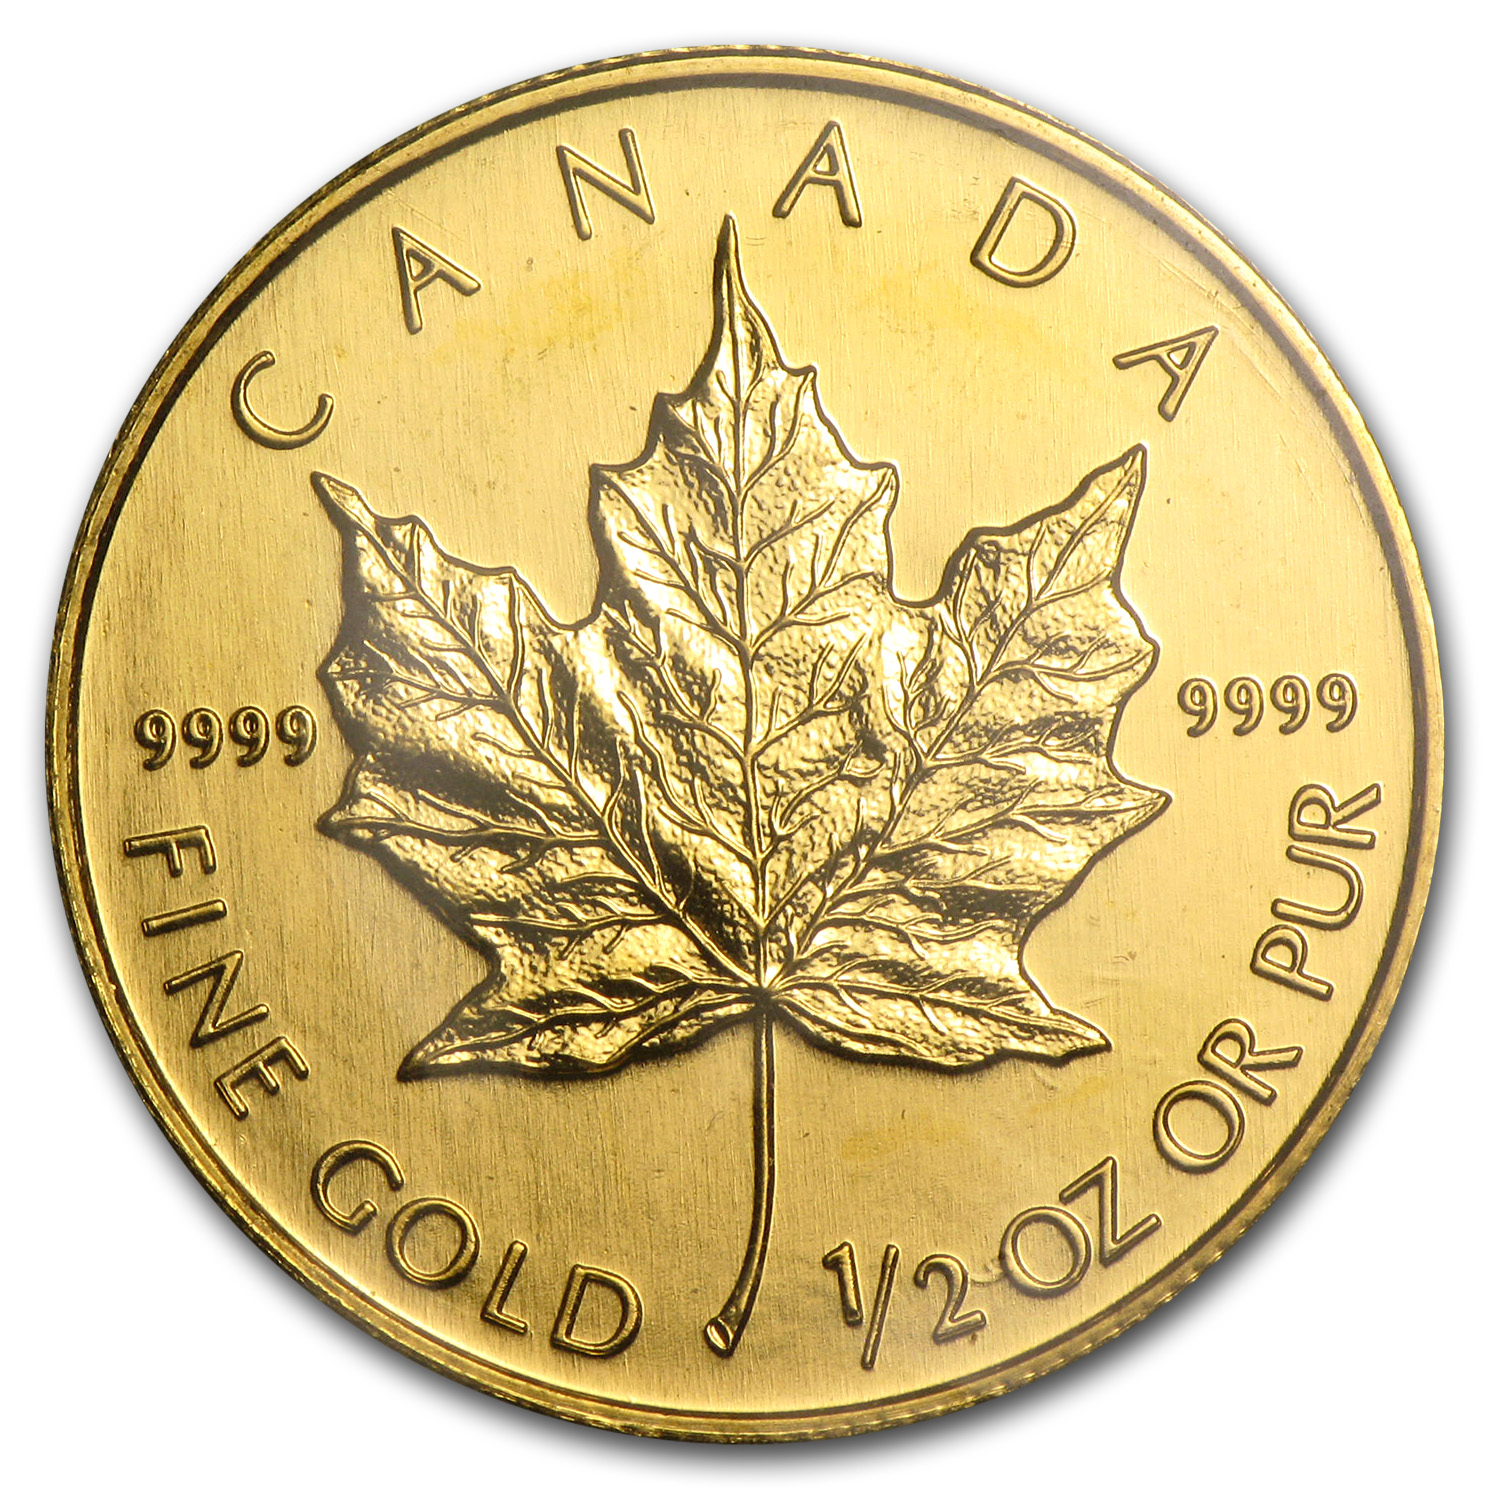 2003 Canada 1/2 oz Gold Maple Leaf BU